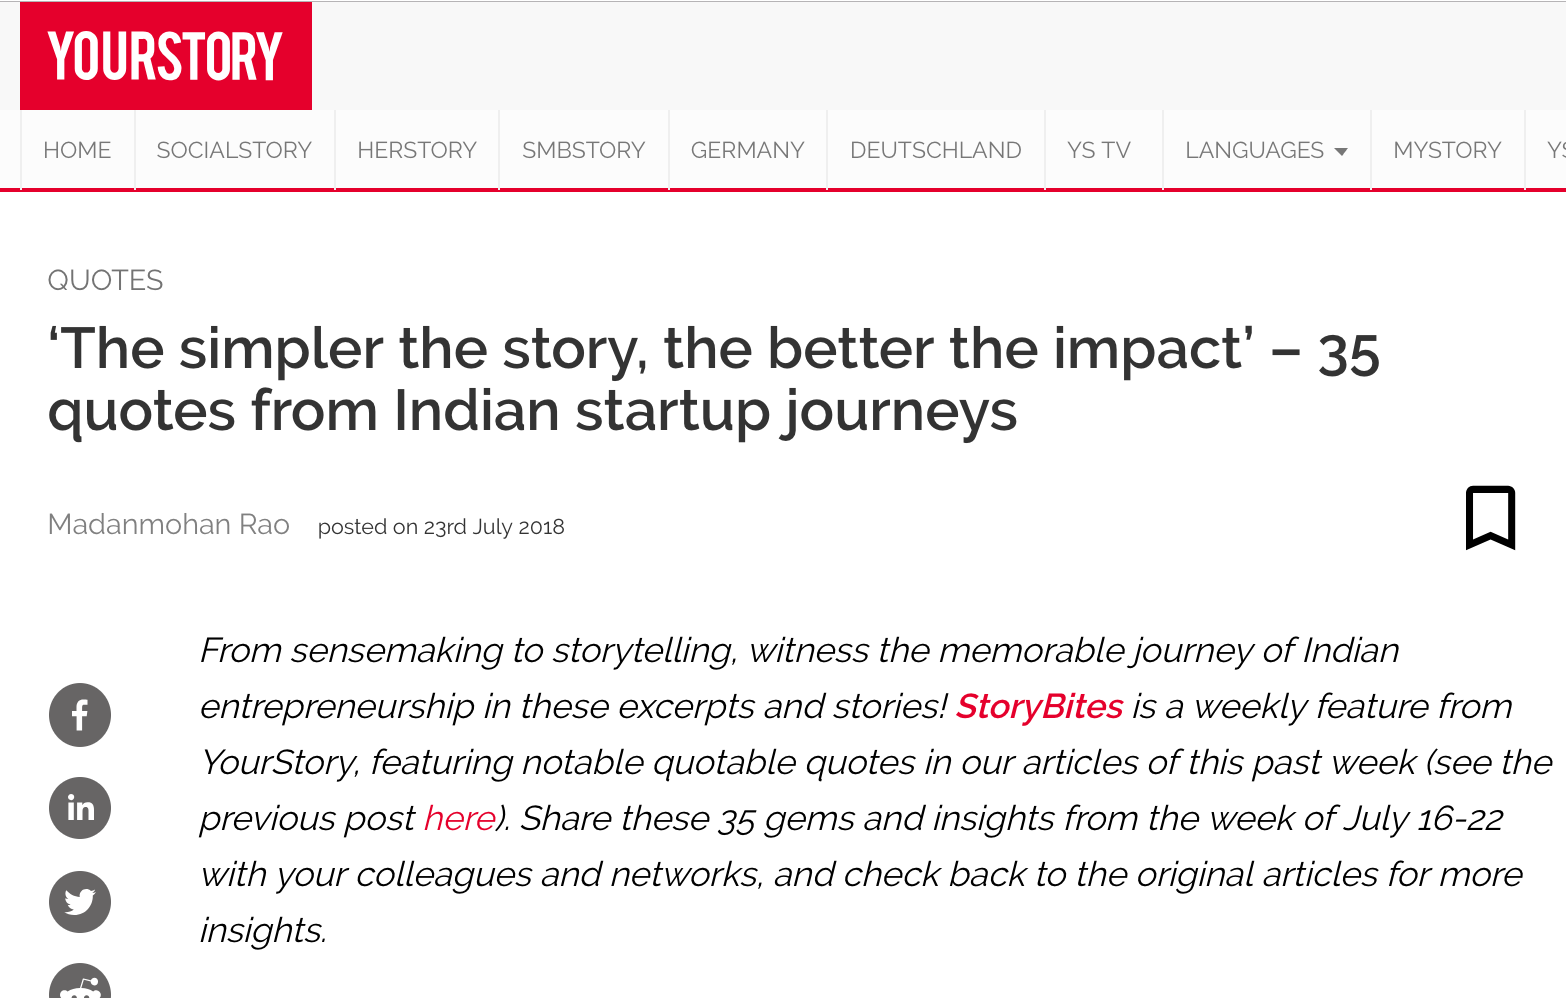 YourStory | 'The simpler the story, the better the impact' – 35 quotes from Indian startup journeys